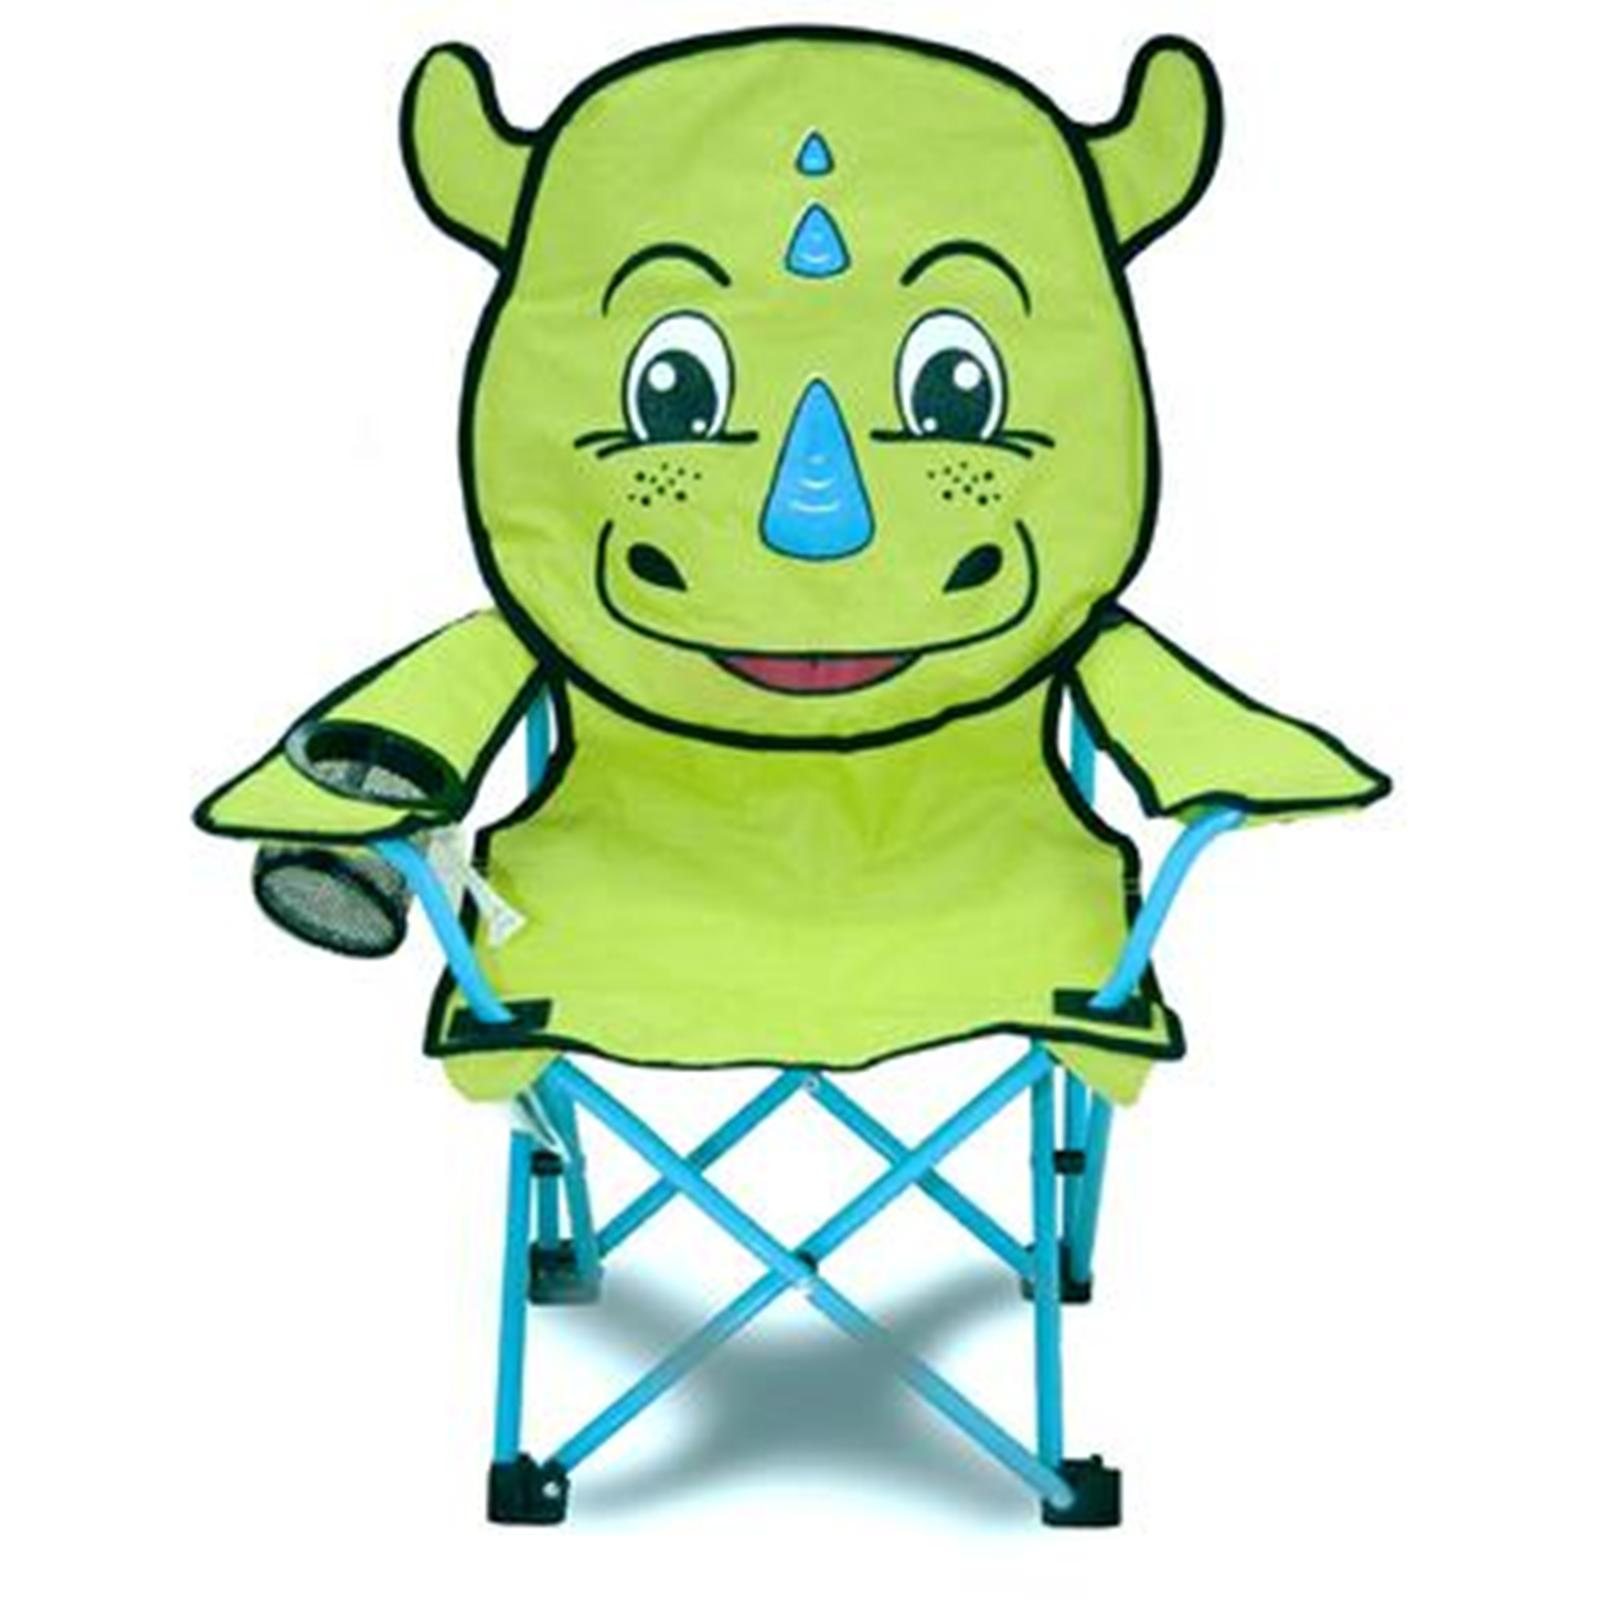 northwest territory chairs folding beach canada kids animal head camping chair clip art library